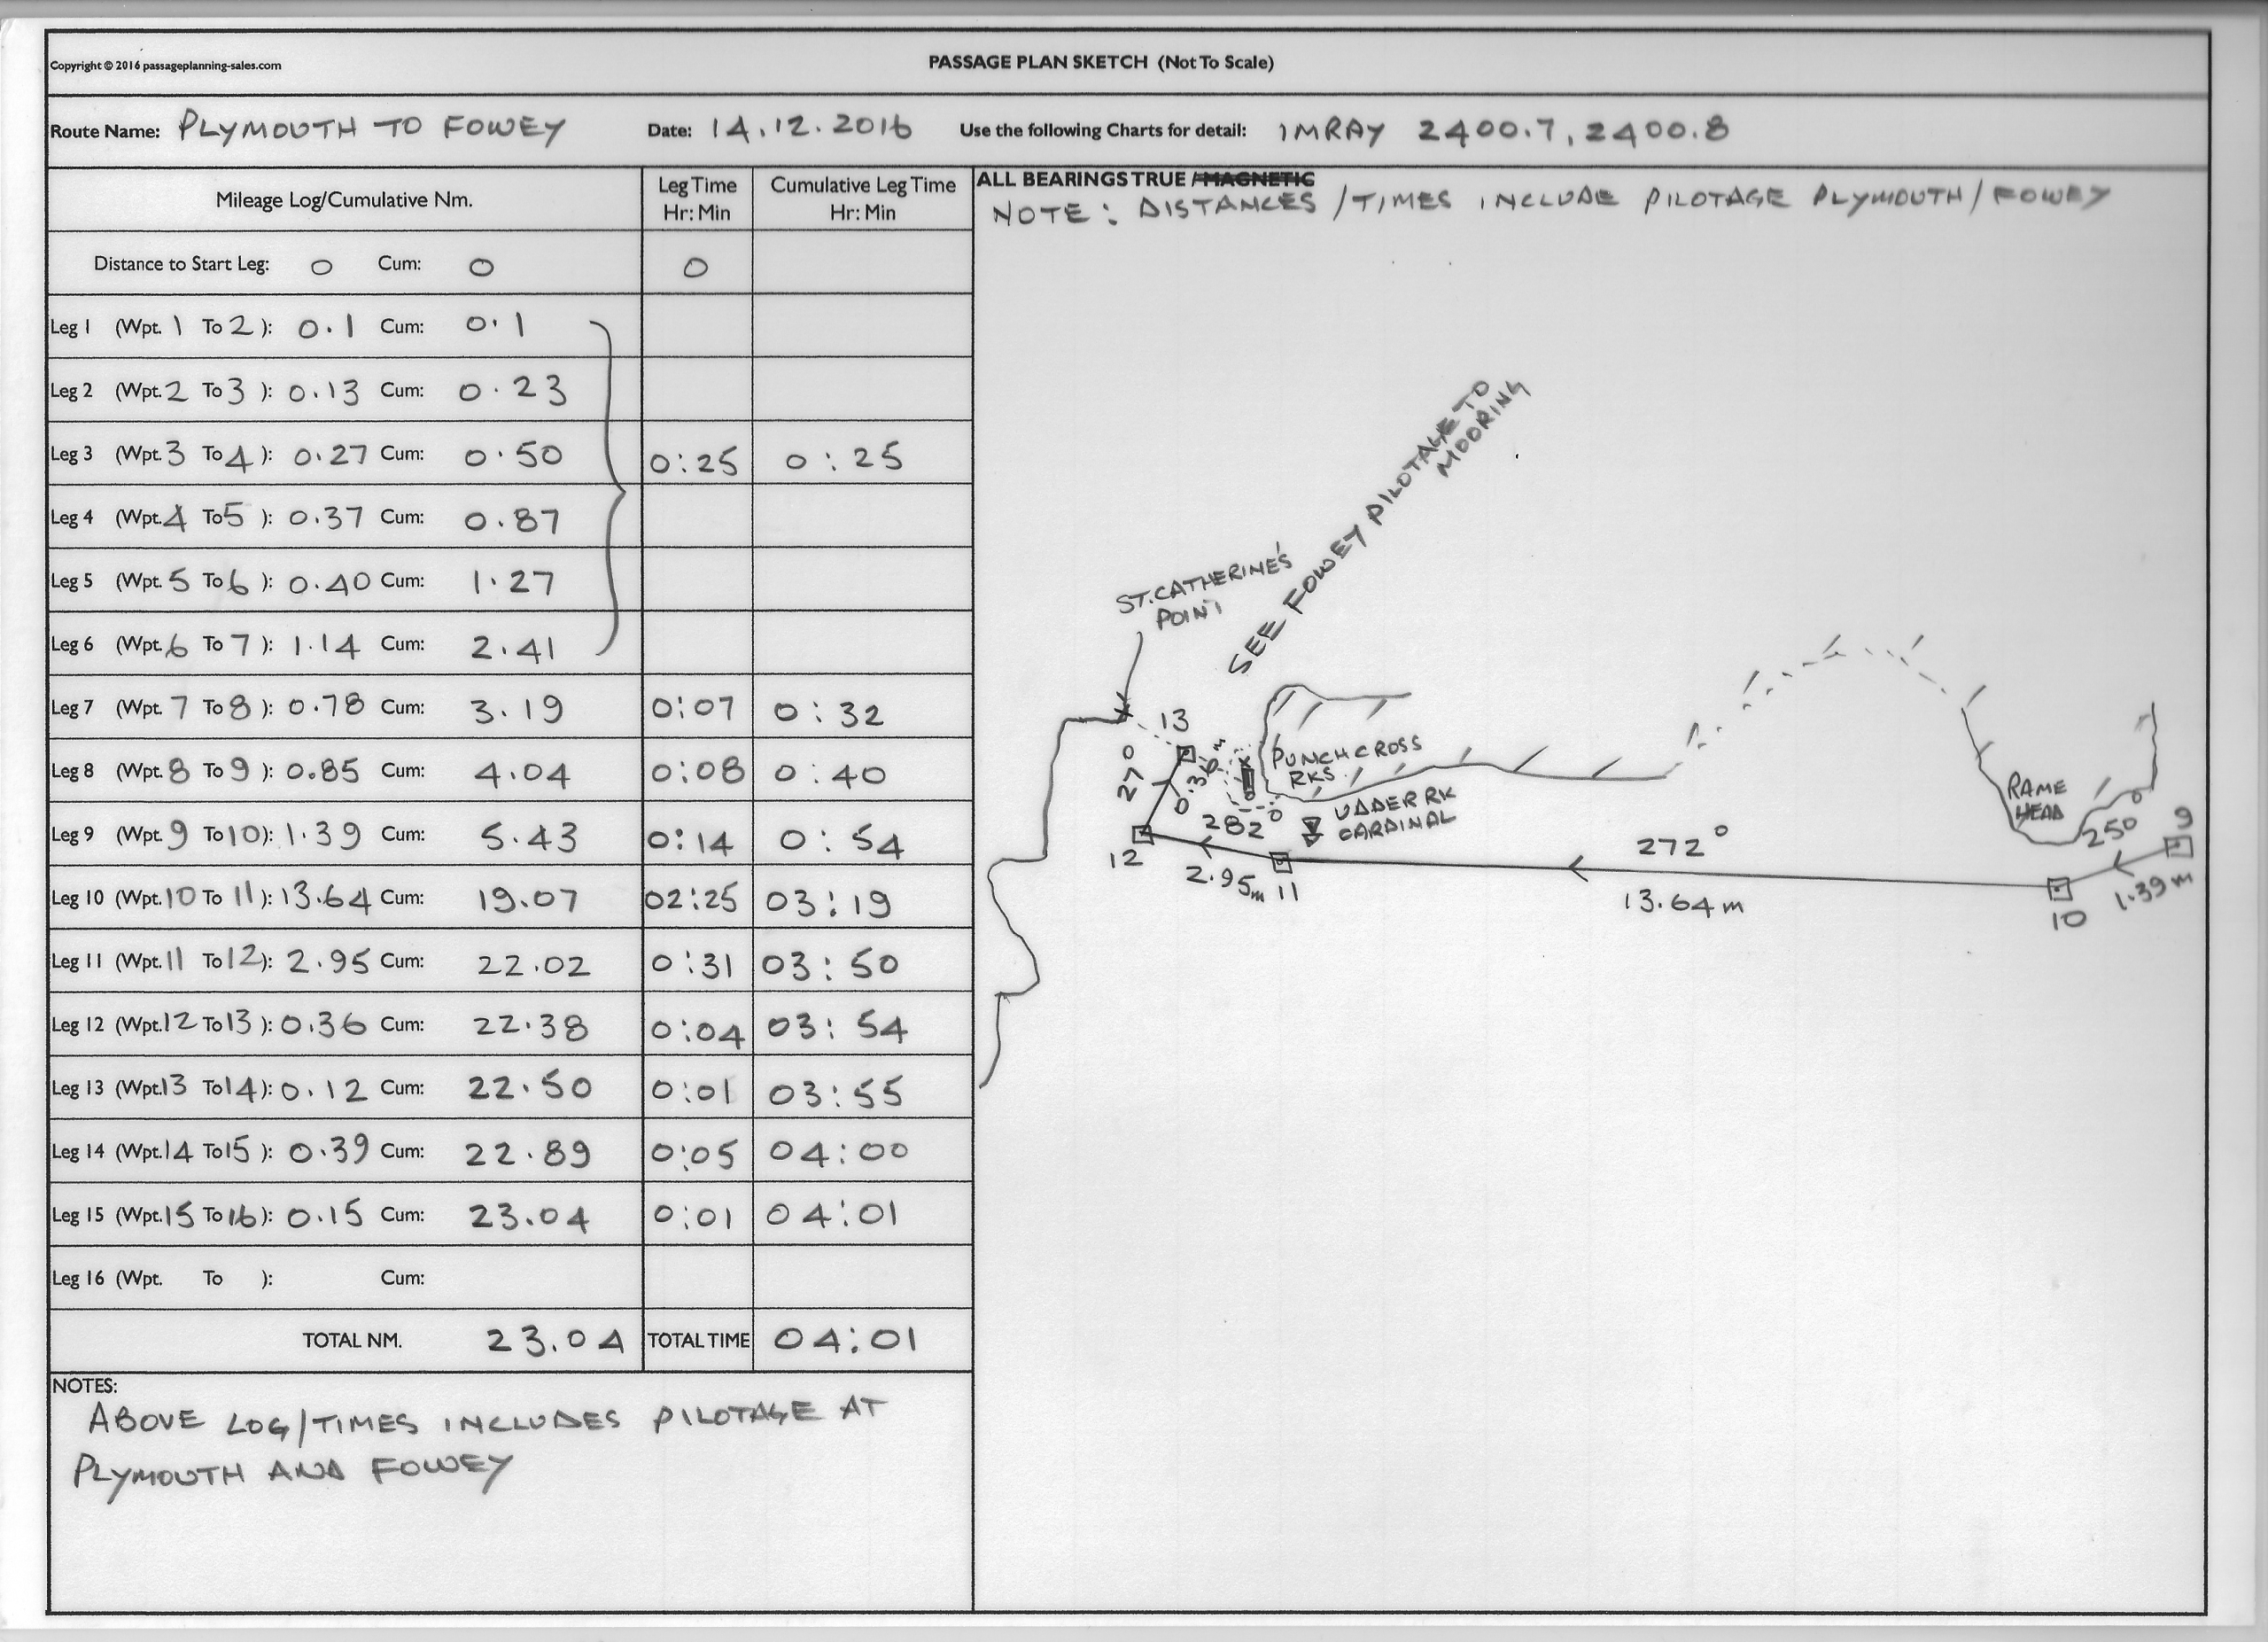 Passage Planning And Pilotage Planning Guidance Tuition And Examples Links To Victualling A Yacht Cours D Orientation Sur La Planification Du Passage Et Du Pilotage Et Exemples